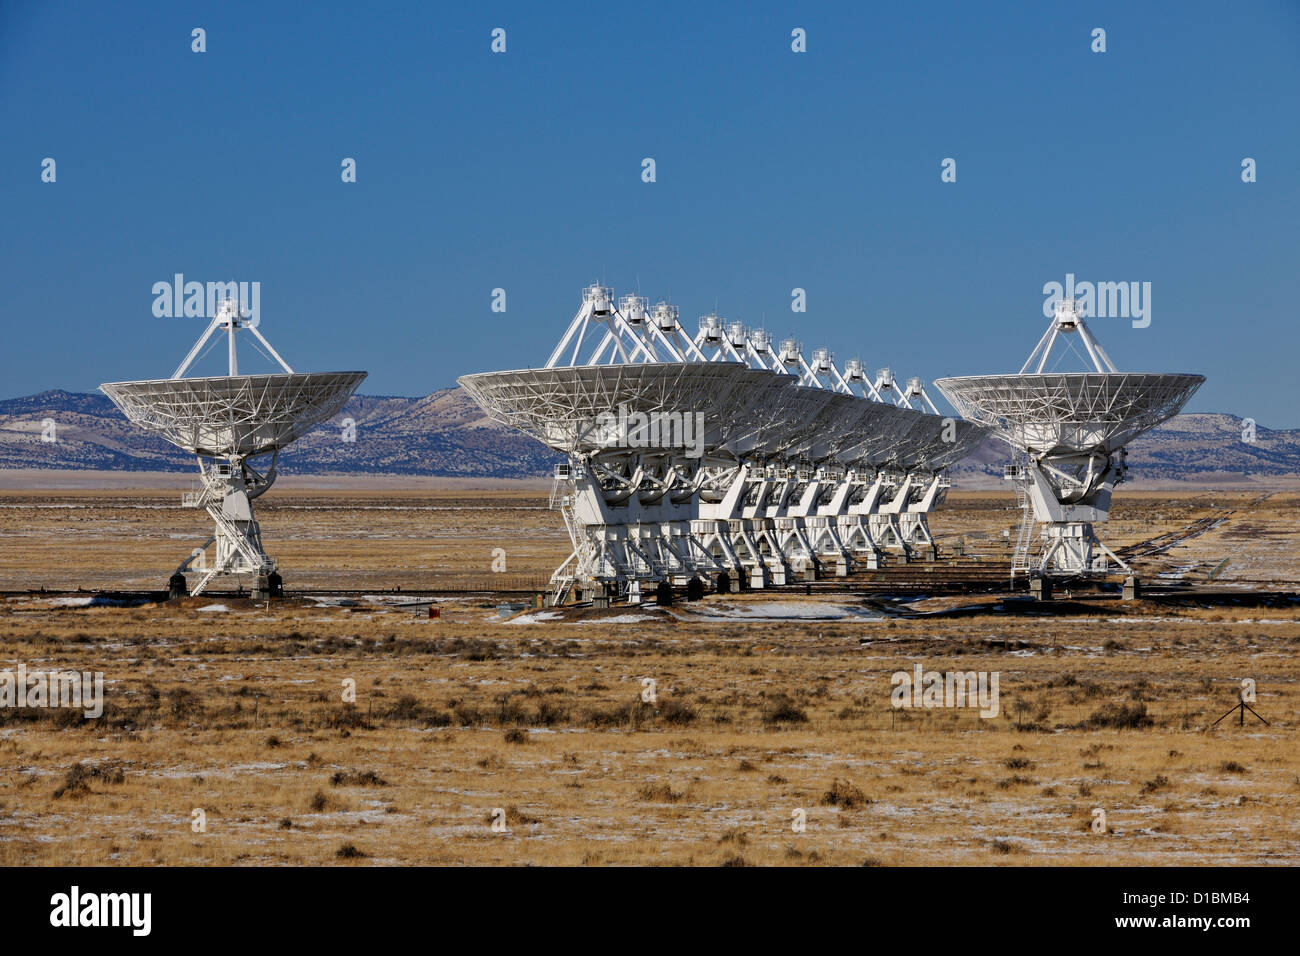 The Very Large Array, Plains of San Augustine, near Magdalena, New Mexico, USA - Stock Image